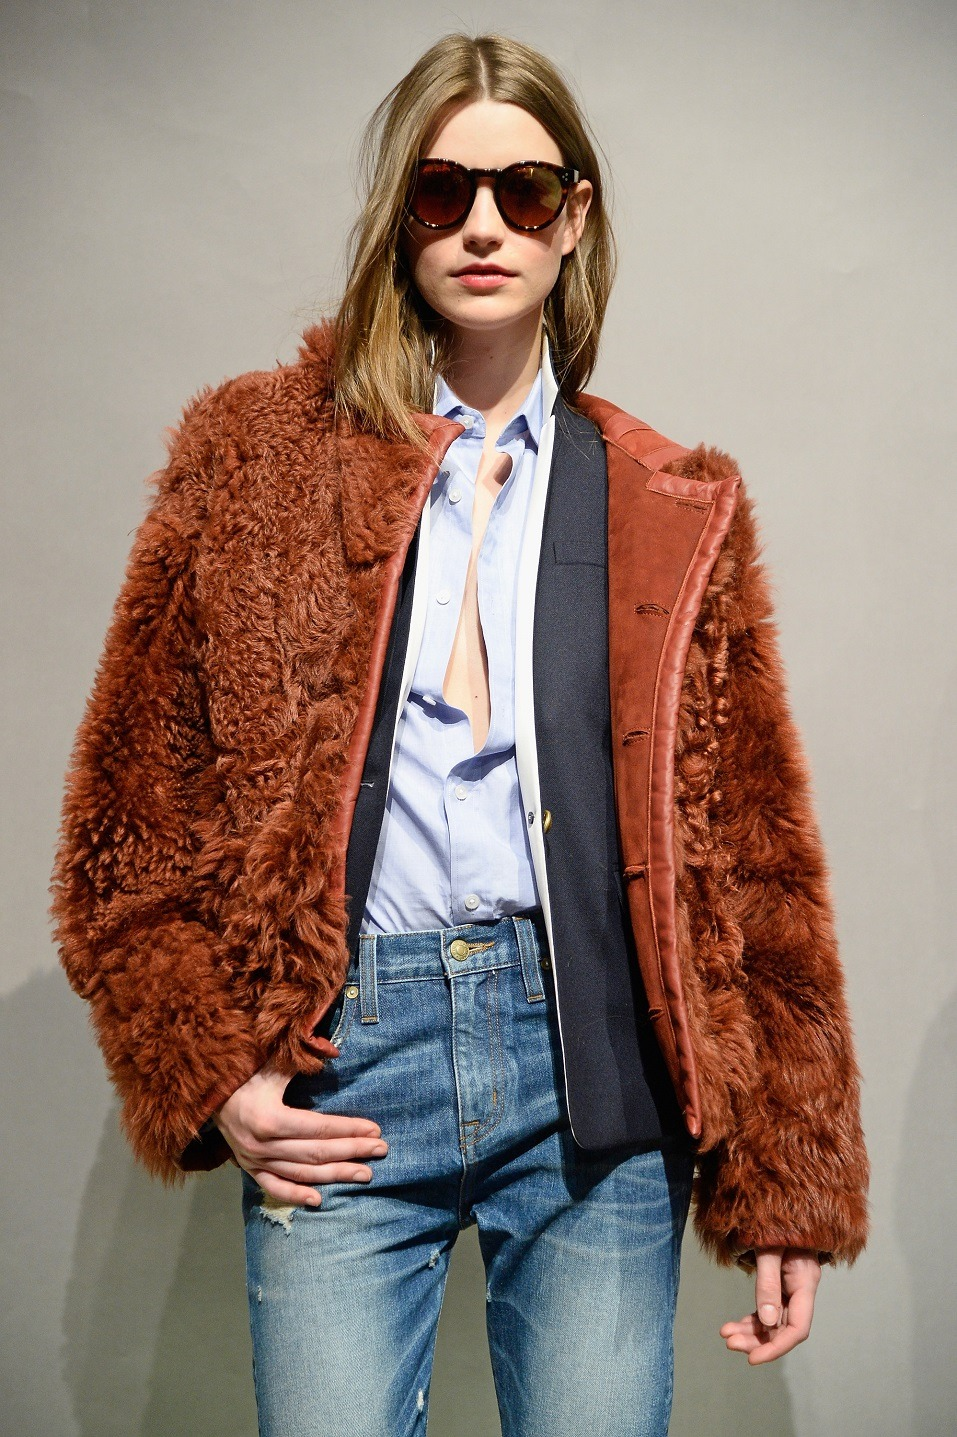 A model poses at the J.Crew presentation during Mercedes-Benz Fashion Week Fall 2015